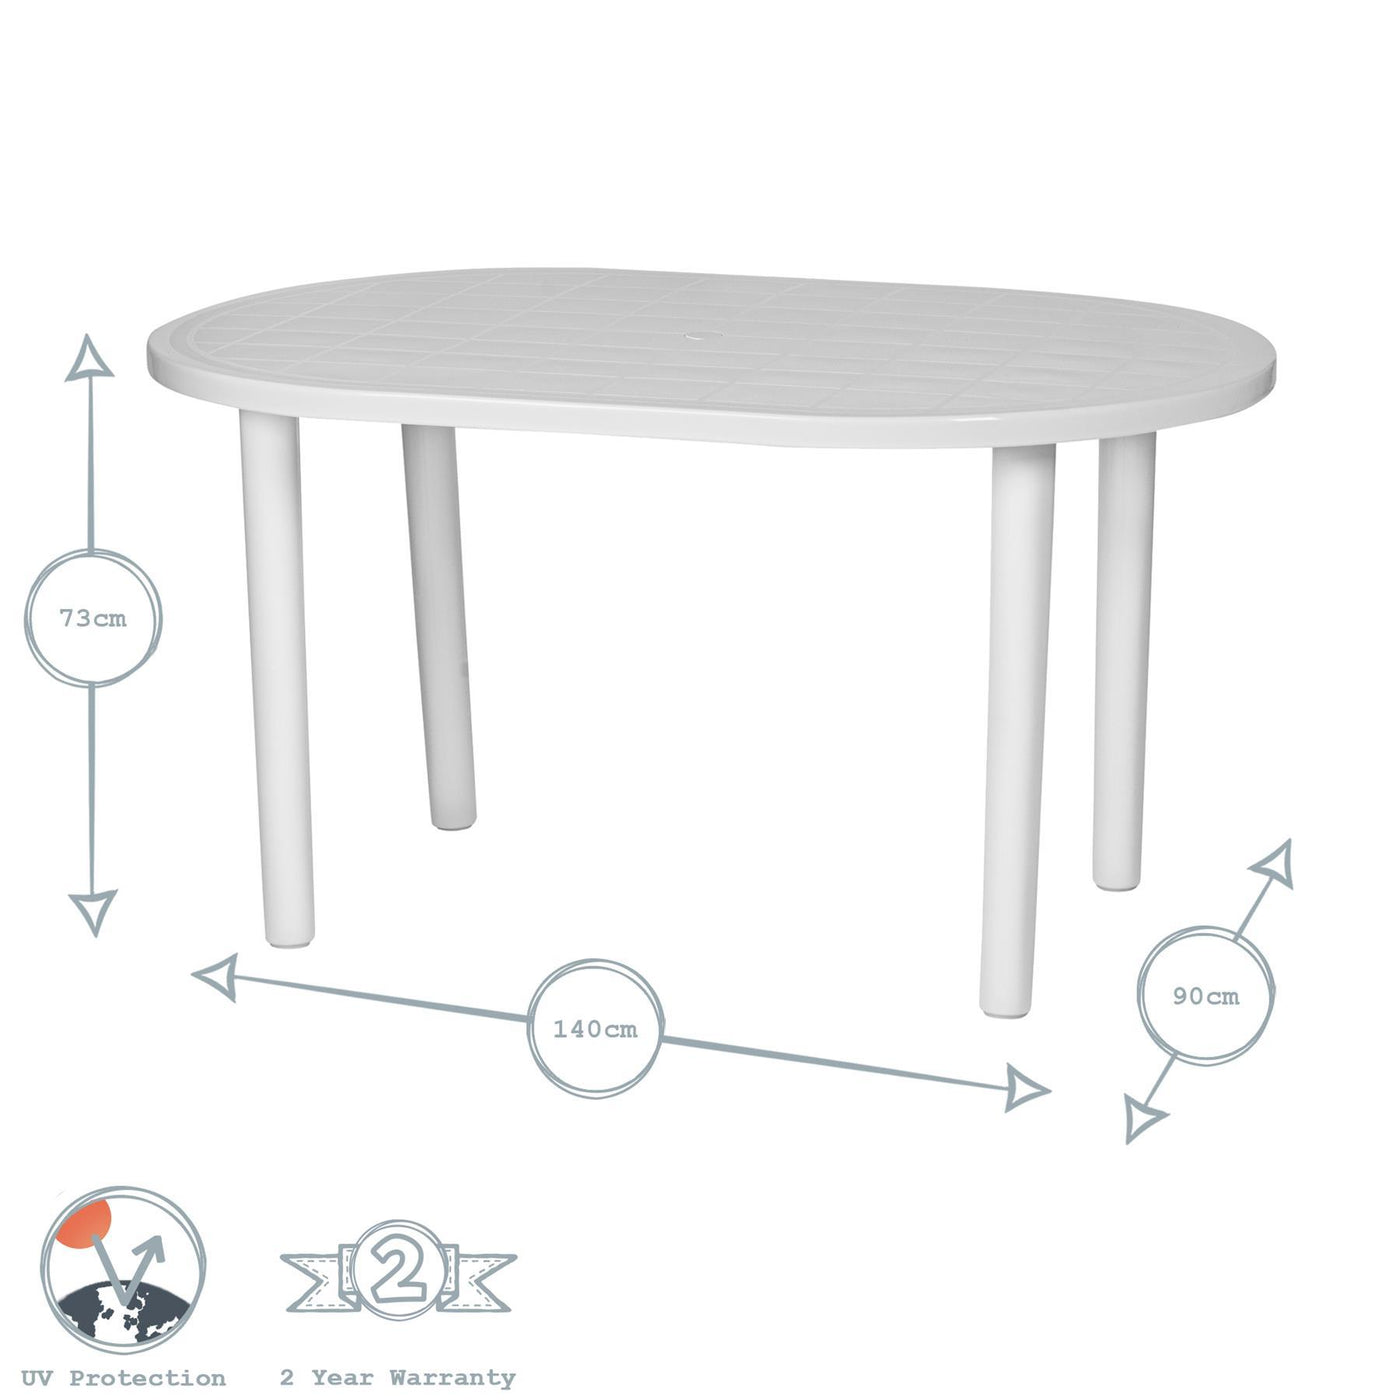 Large 90cm Green Resin Round Garden Dining Table Parasol Hole